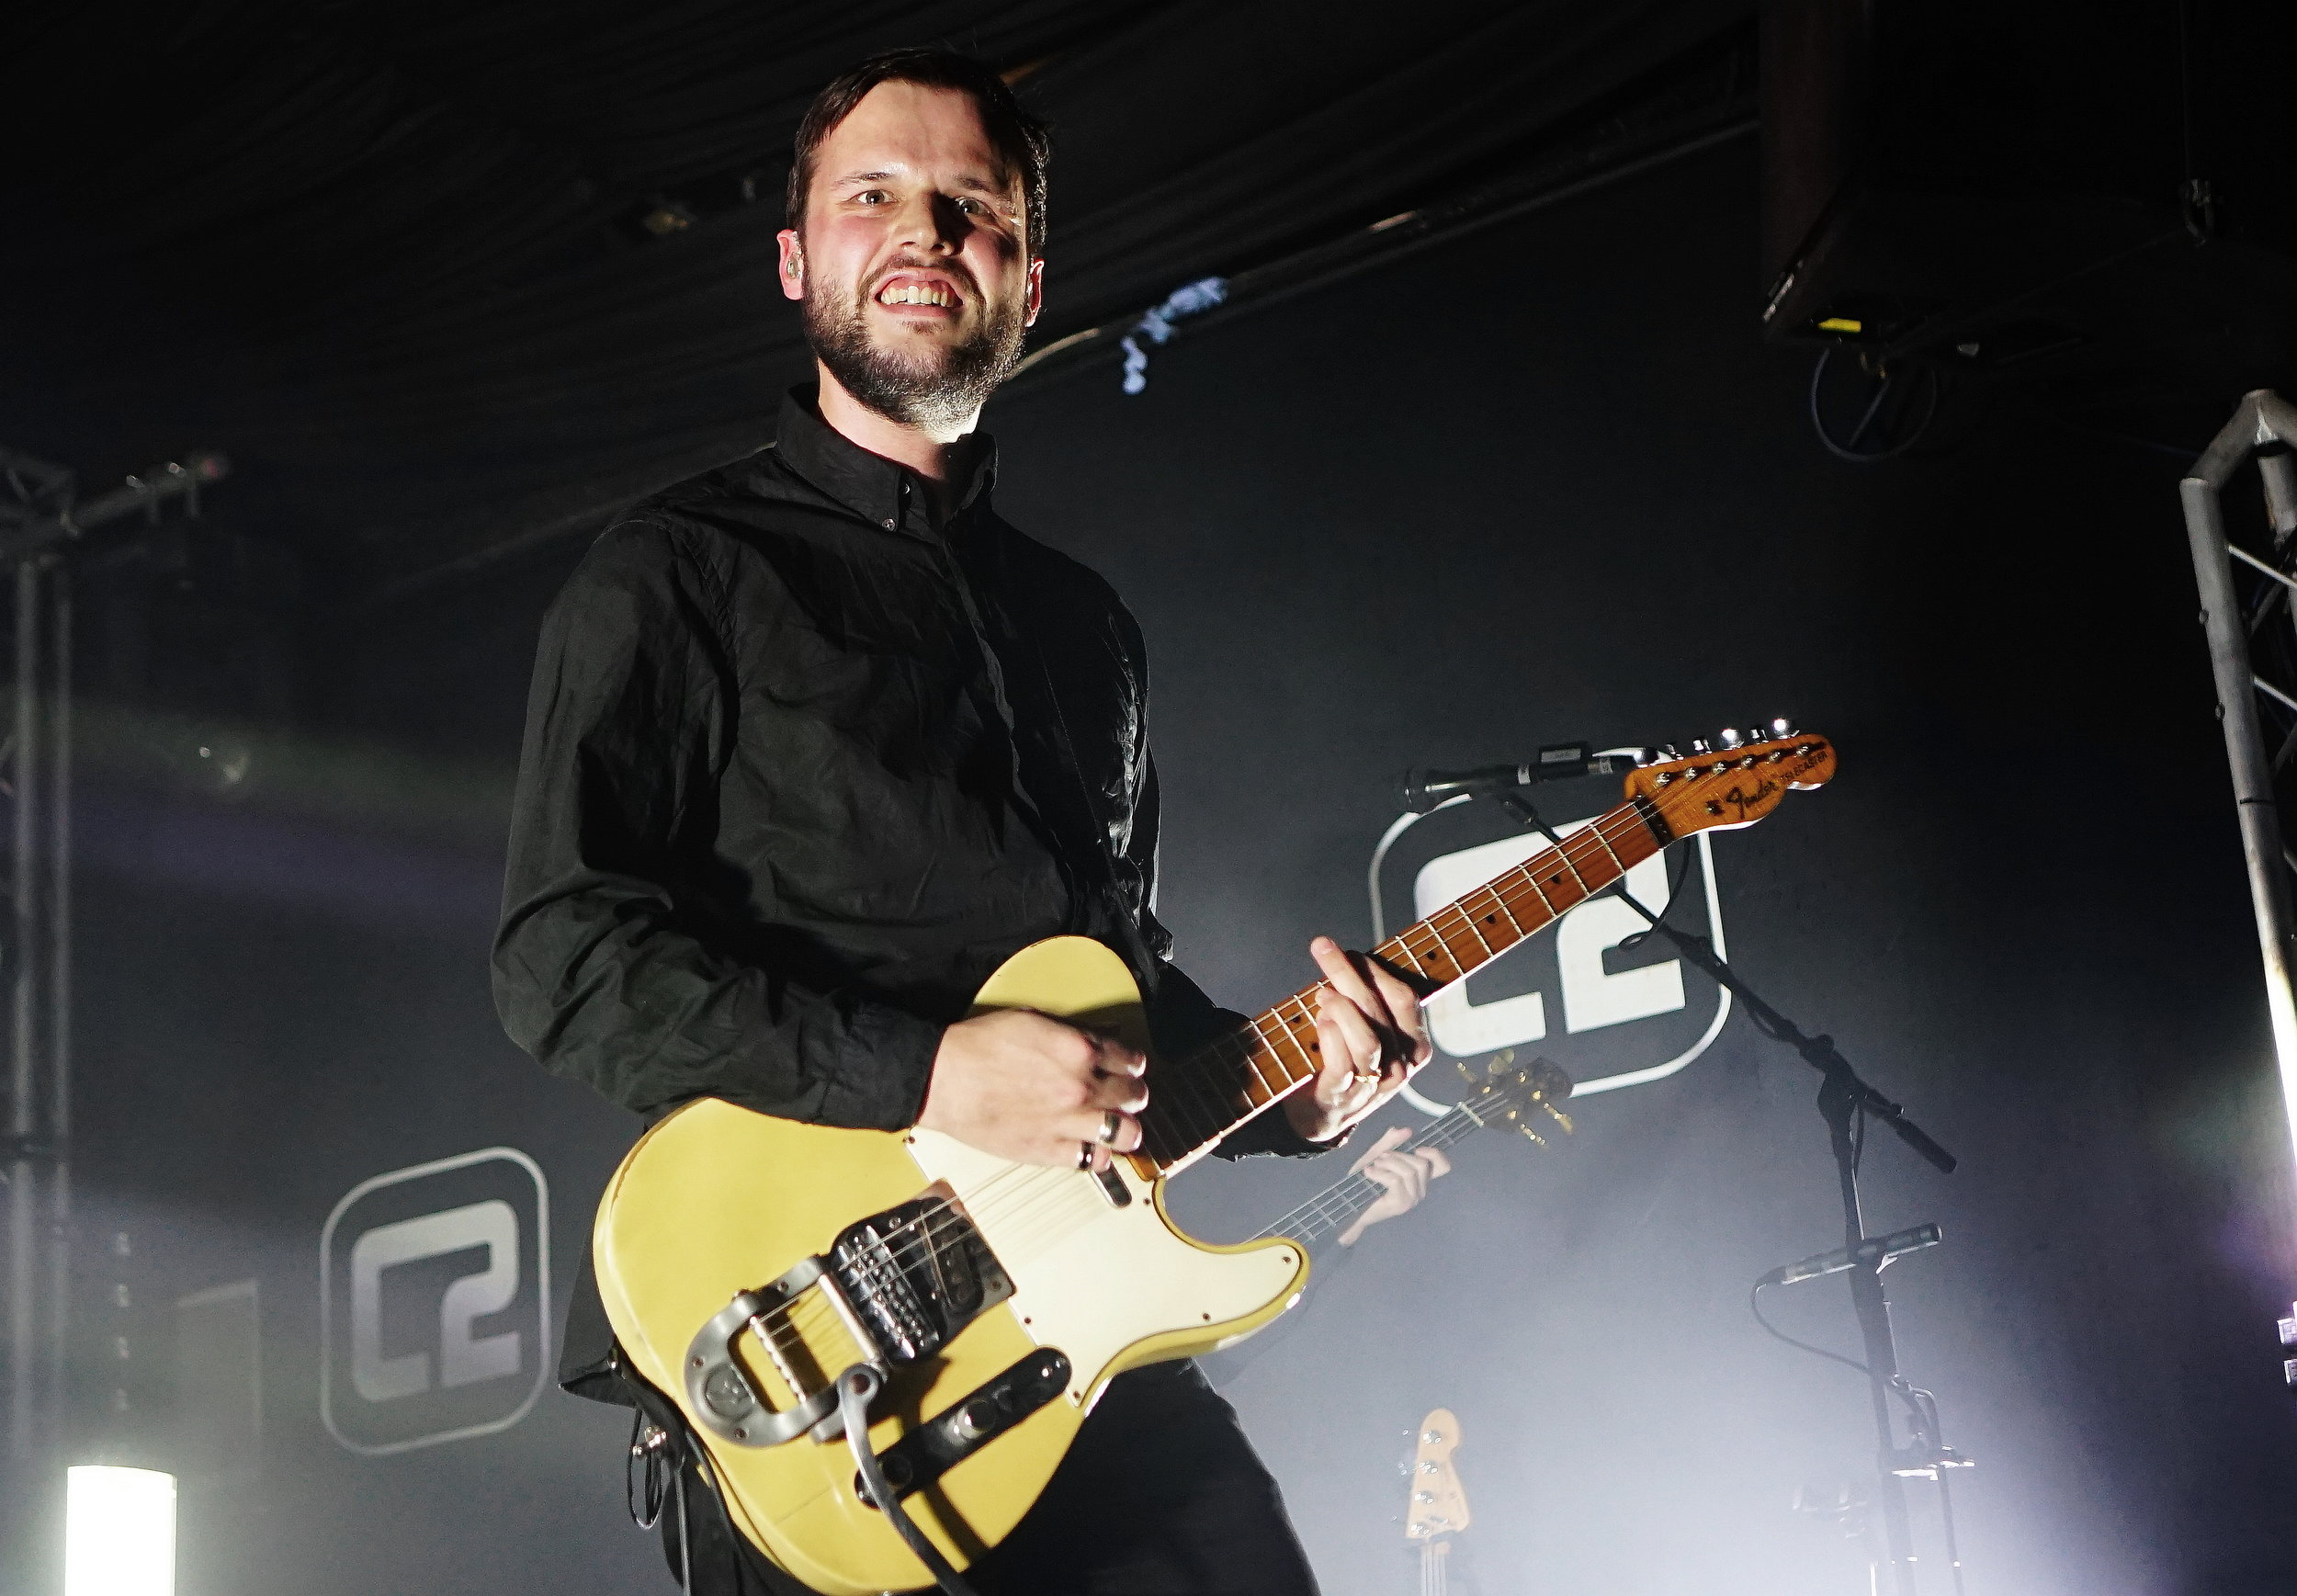 WHITE LIES PERFORMING AT BRIGHTON'S CONCORDE 2 - 31.01.2019  PICTURE BY: MICHAEL HUNDERTMARK PHOTOGRAPHY